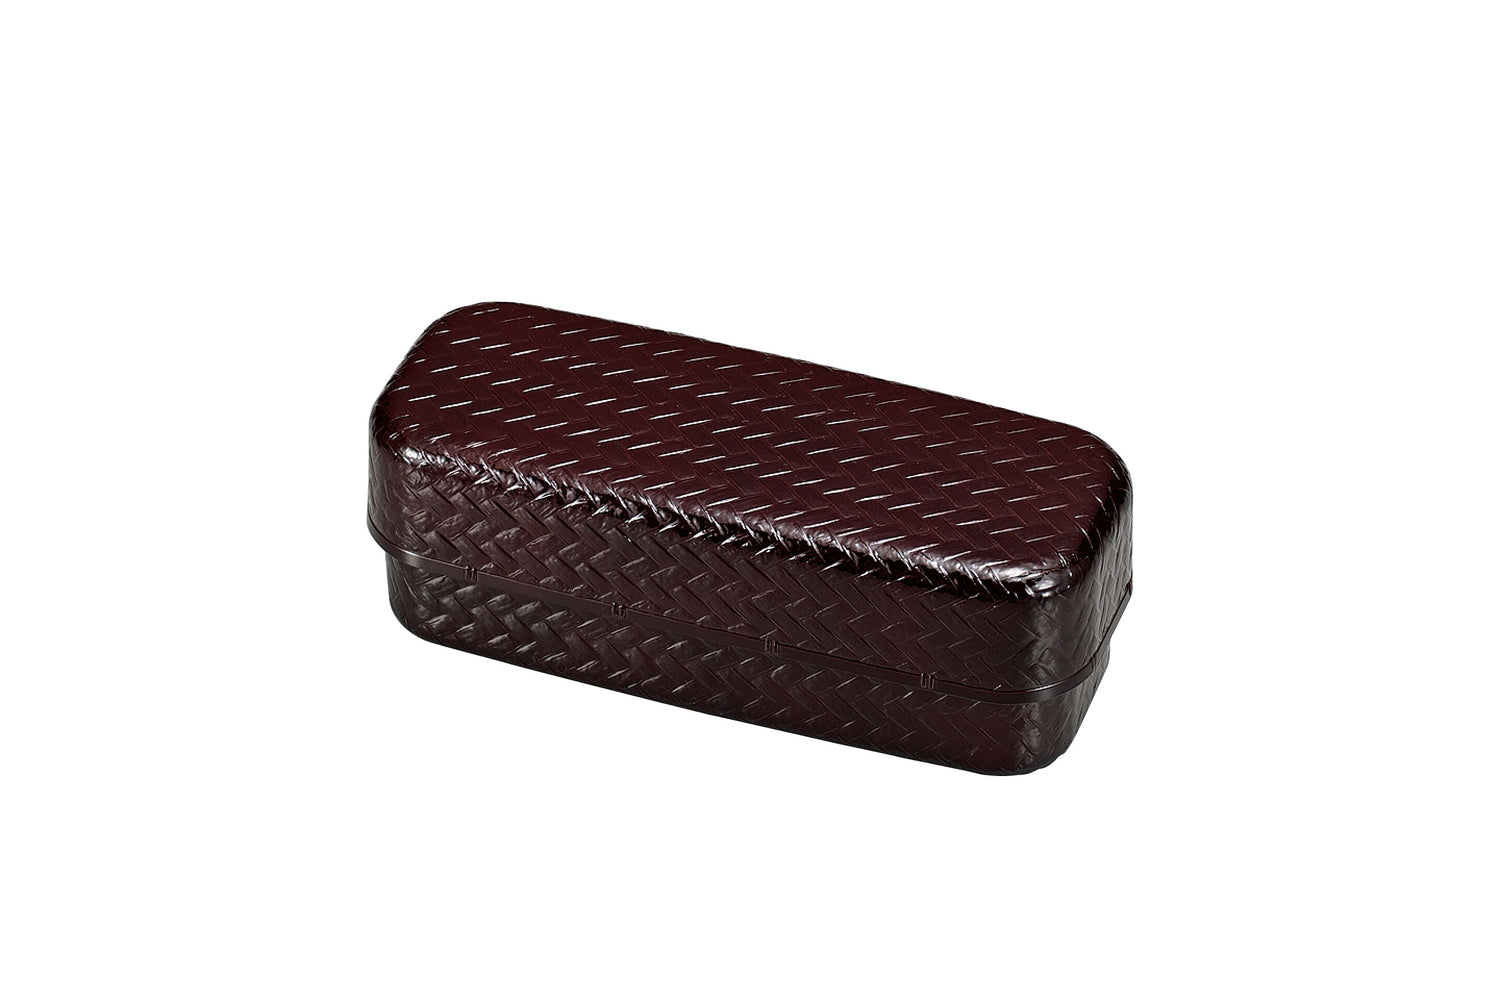 Ajiro Slim Tier Bento Box | Dark Brown by Hakoya - Bento&co Japanese Bento Lunch Boxes and Kitchenware Specialists